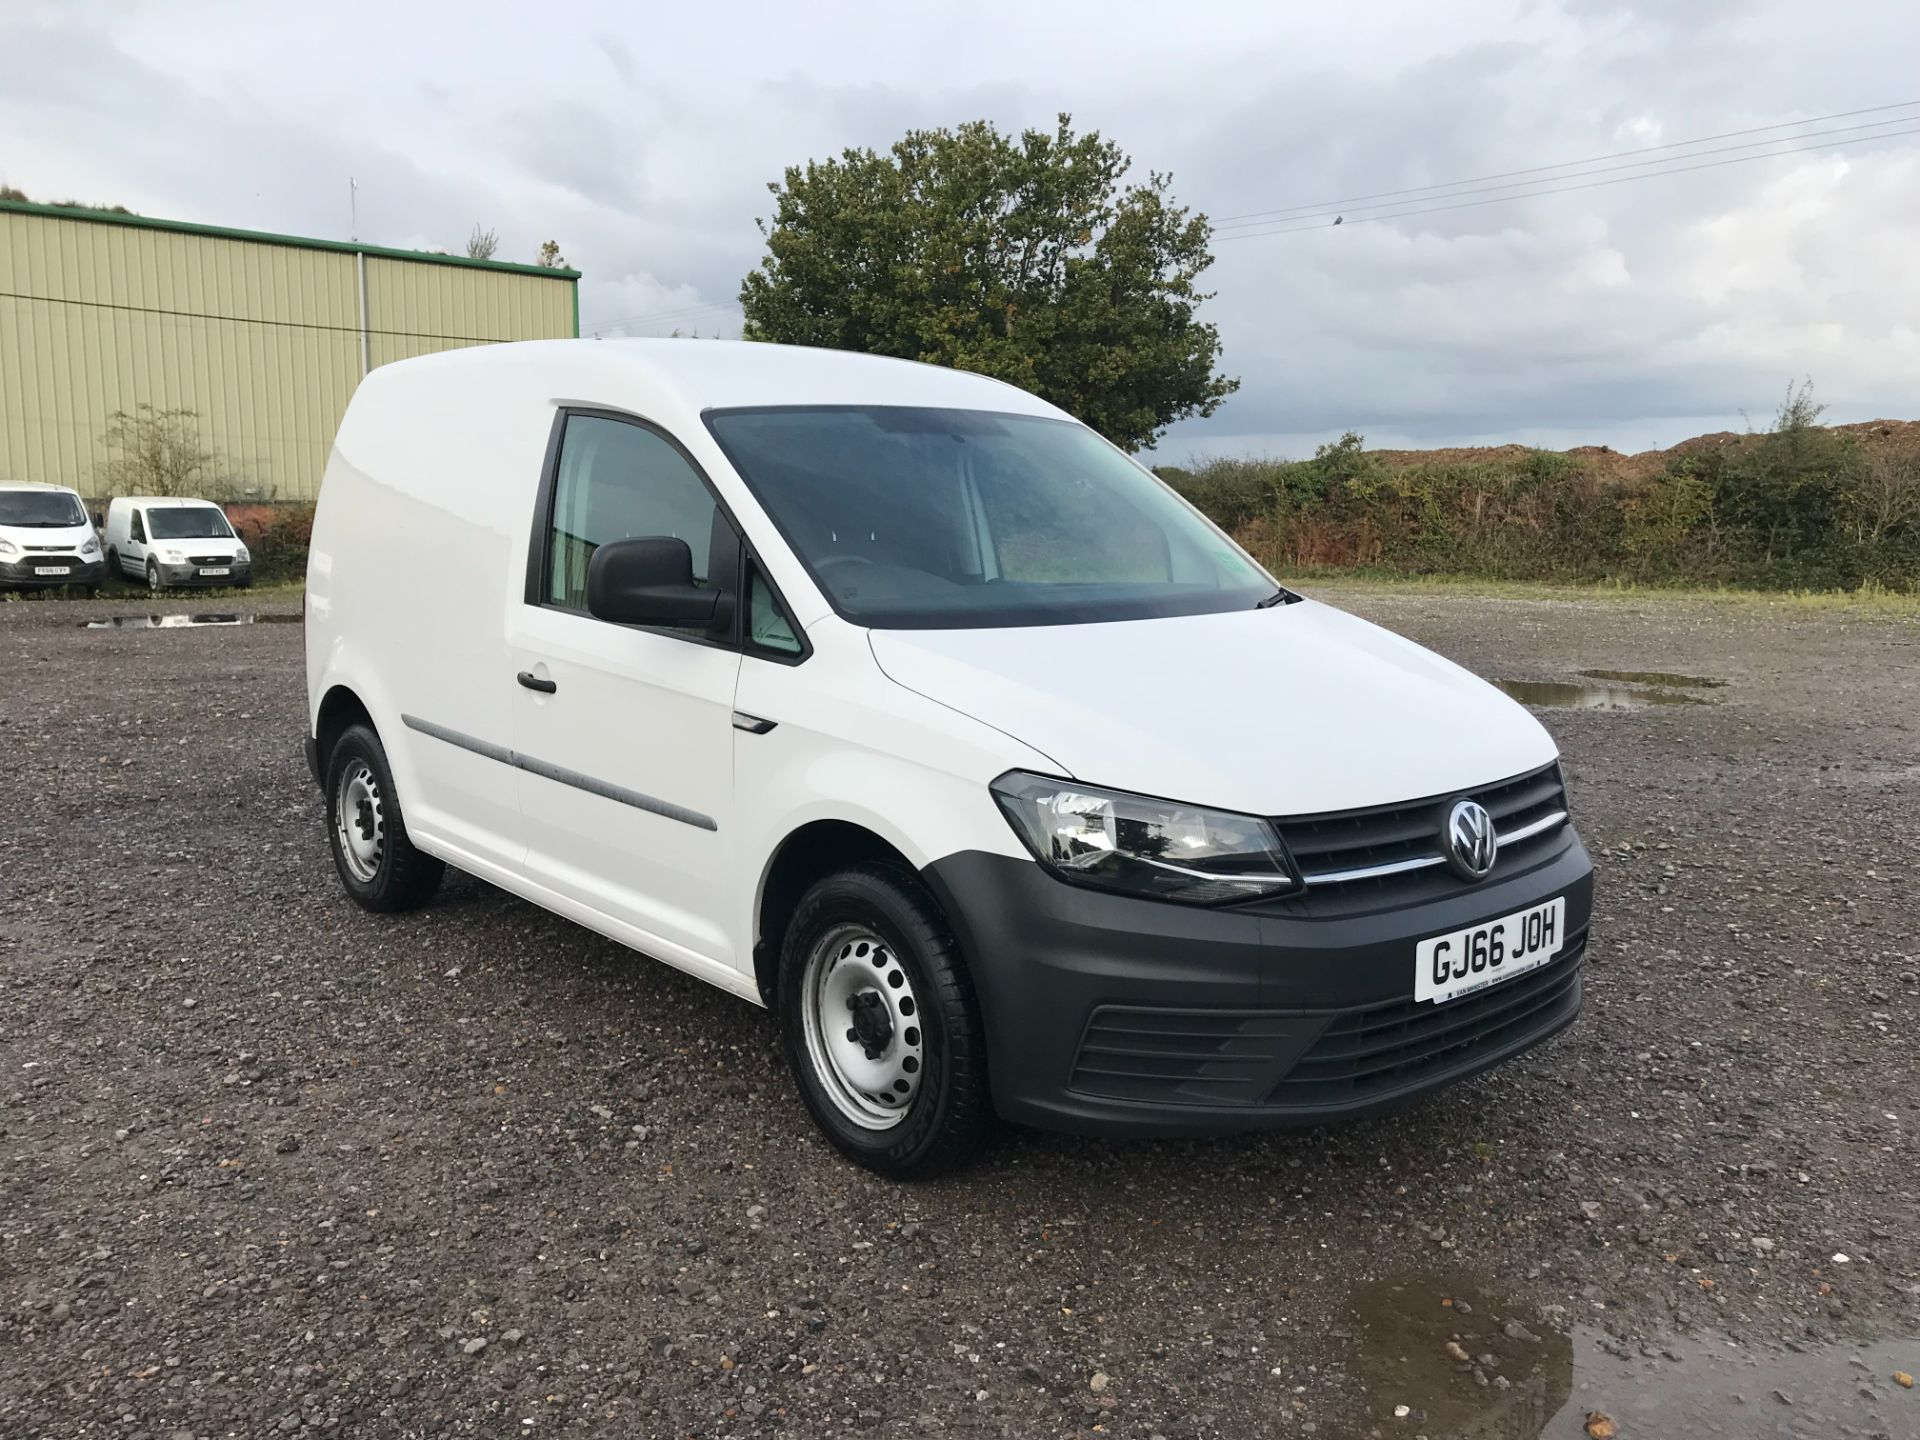 2016 Volkswagen Caddy 2.0 Tdi Bluemotion Tech 102Ps Startline Van (GJ66JOH)